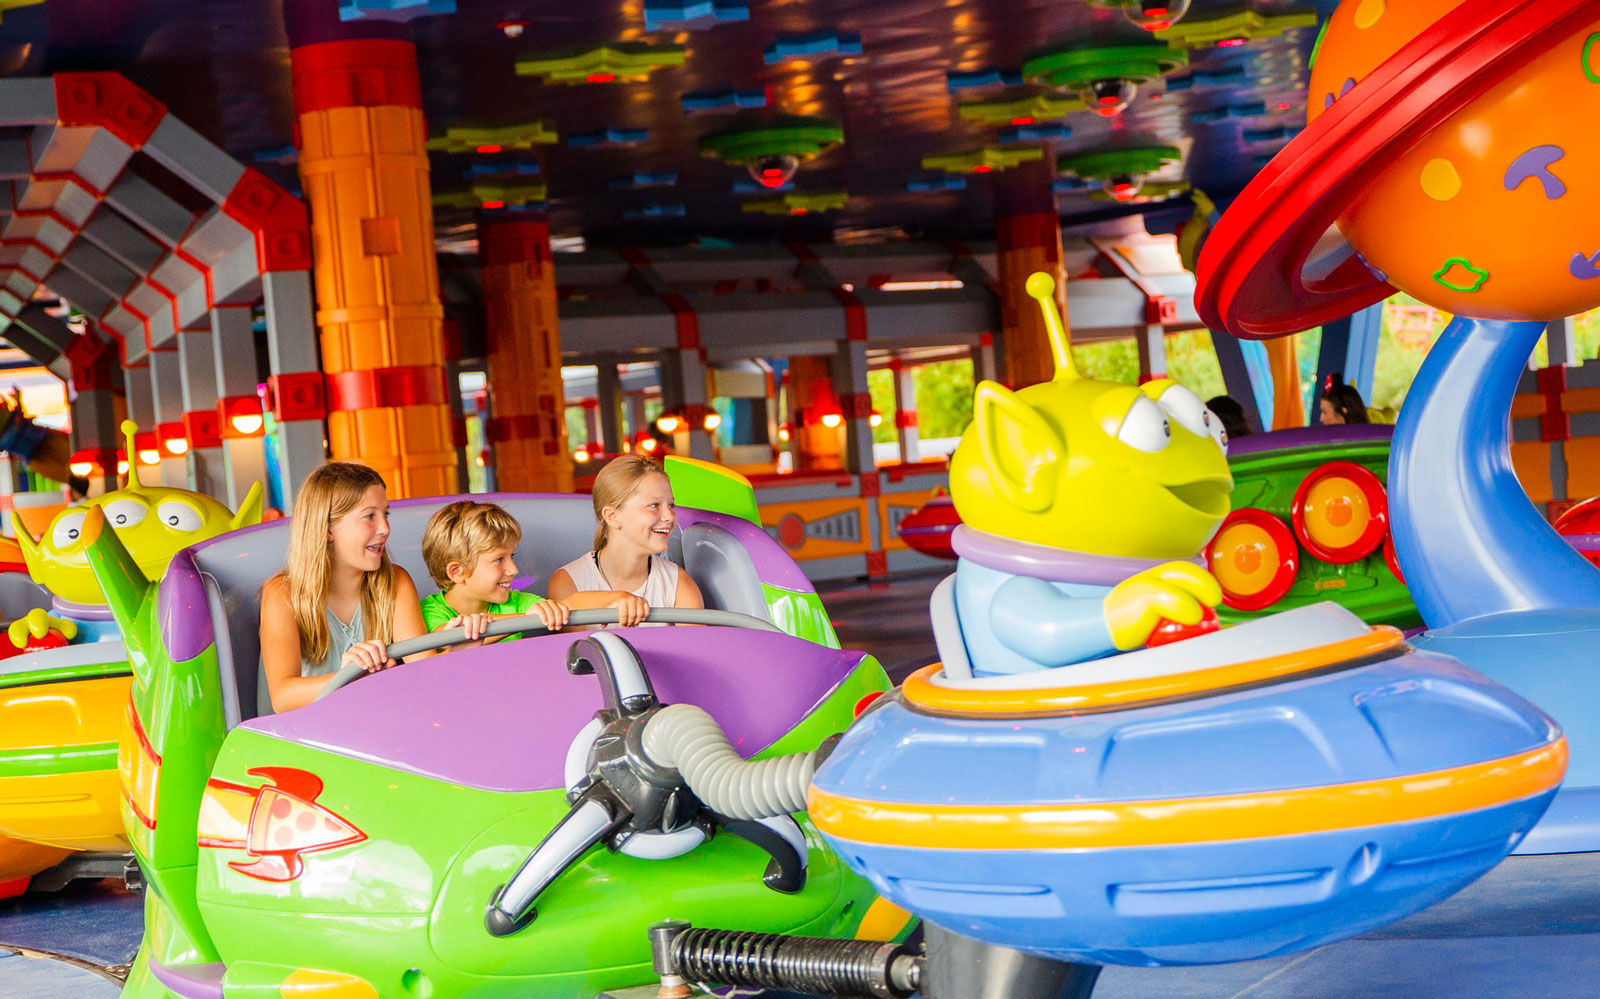 Toy Story Land is opening at Disney's Hollywood Studios on June 30.